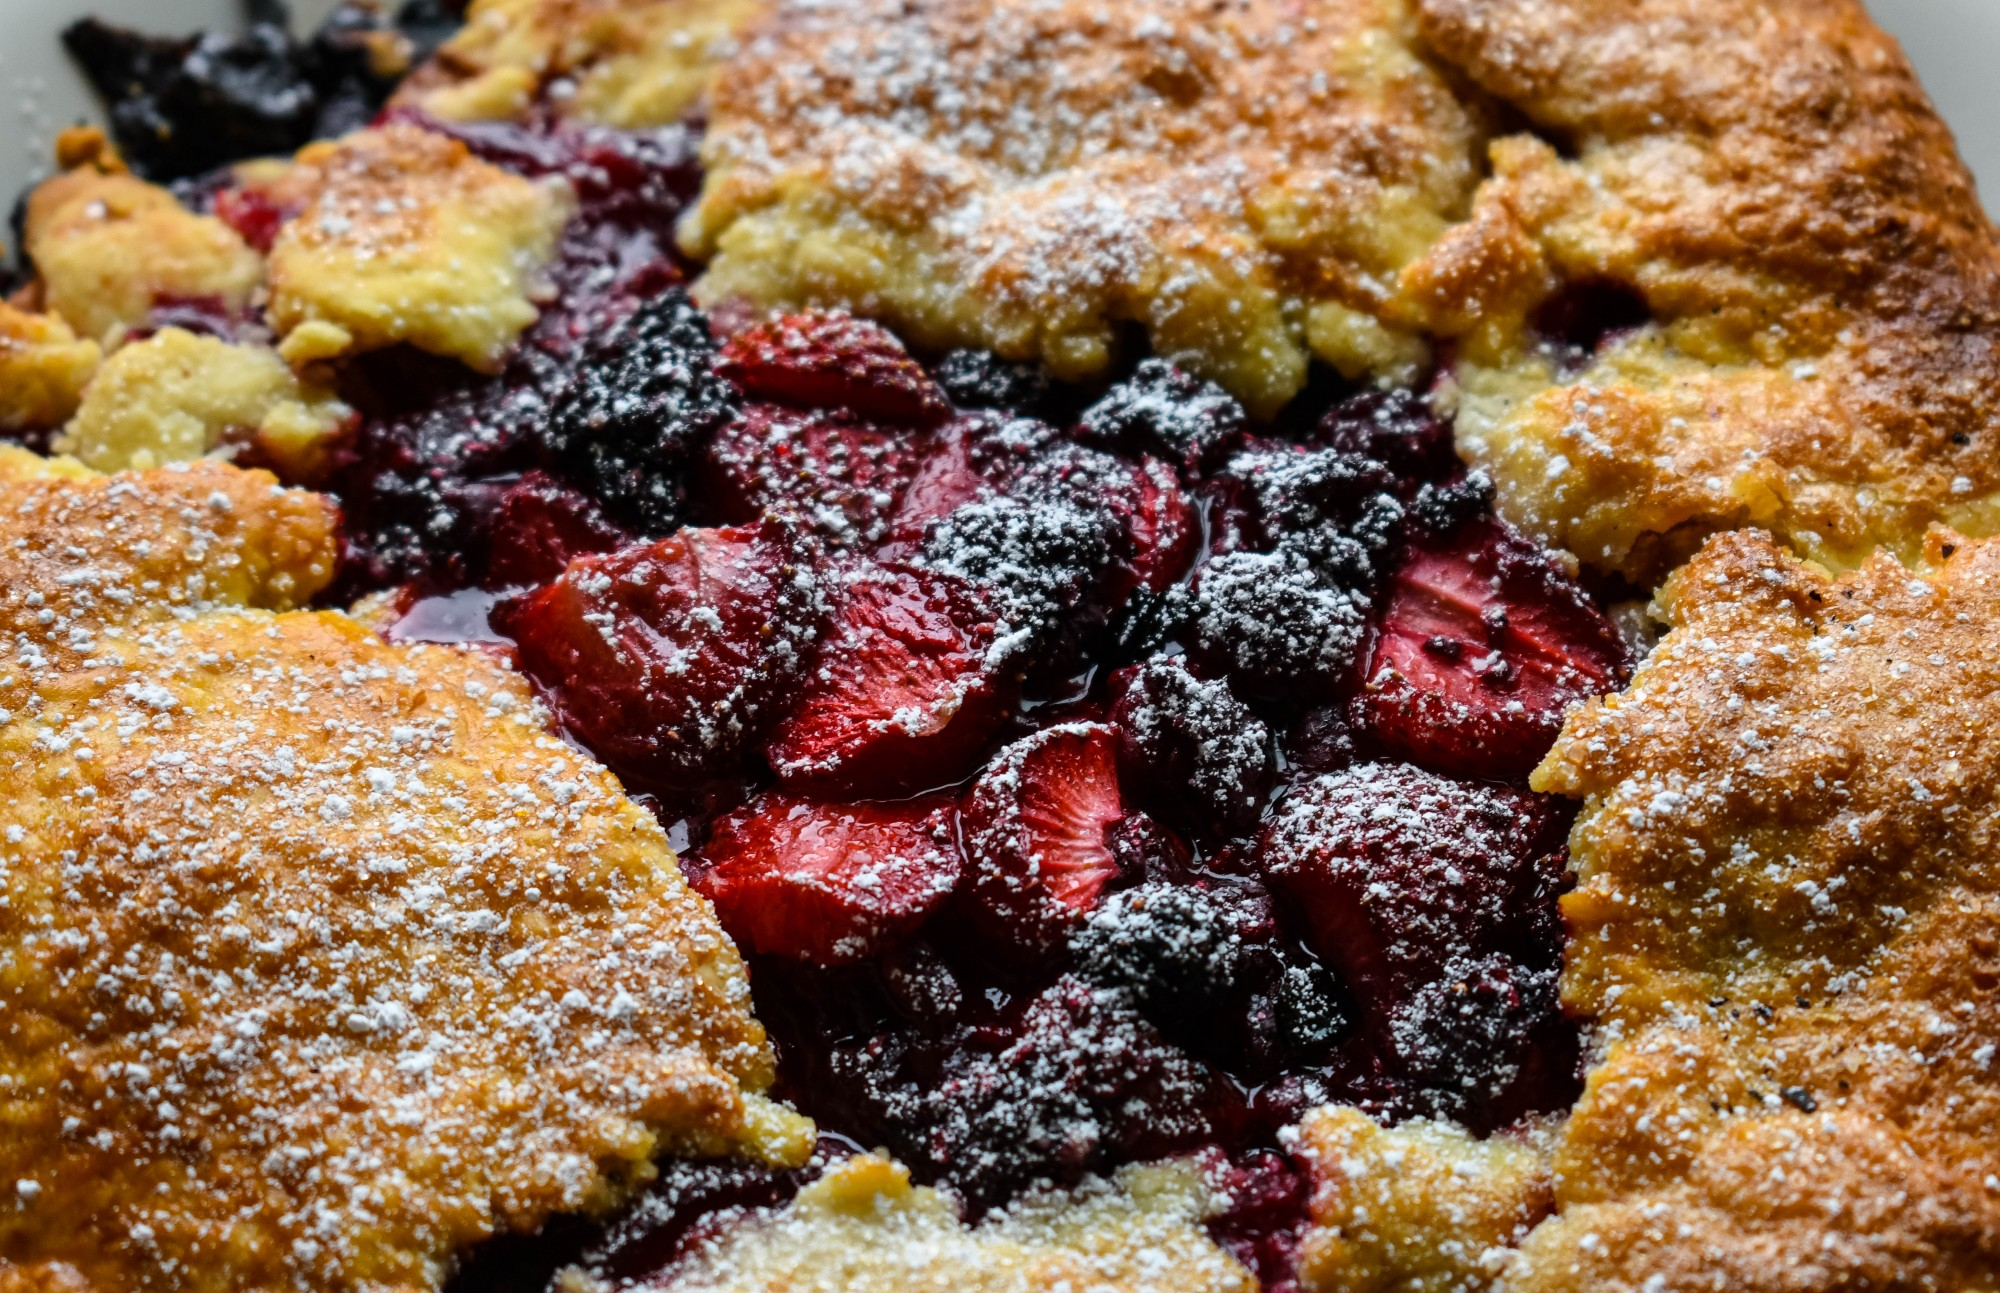 Homemade Berry Galette made during the College Kitchen segment on Wednesday, July 22. The dishes were made with ingredients from Minneapolis Farmers Markets.